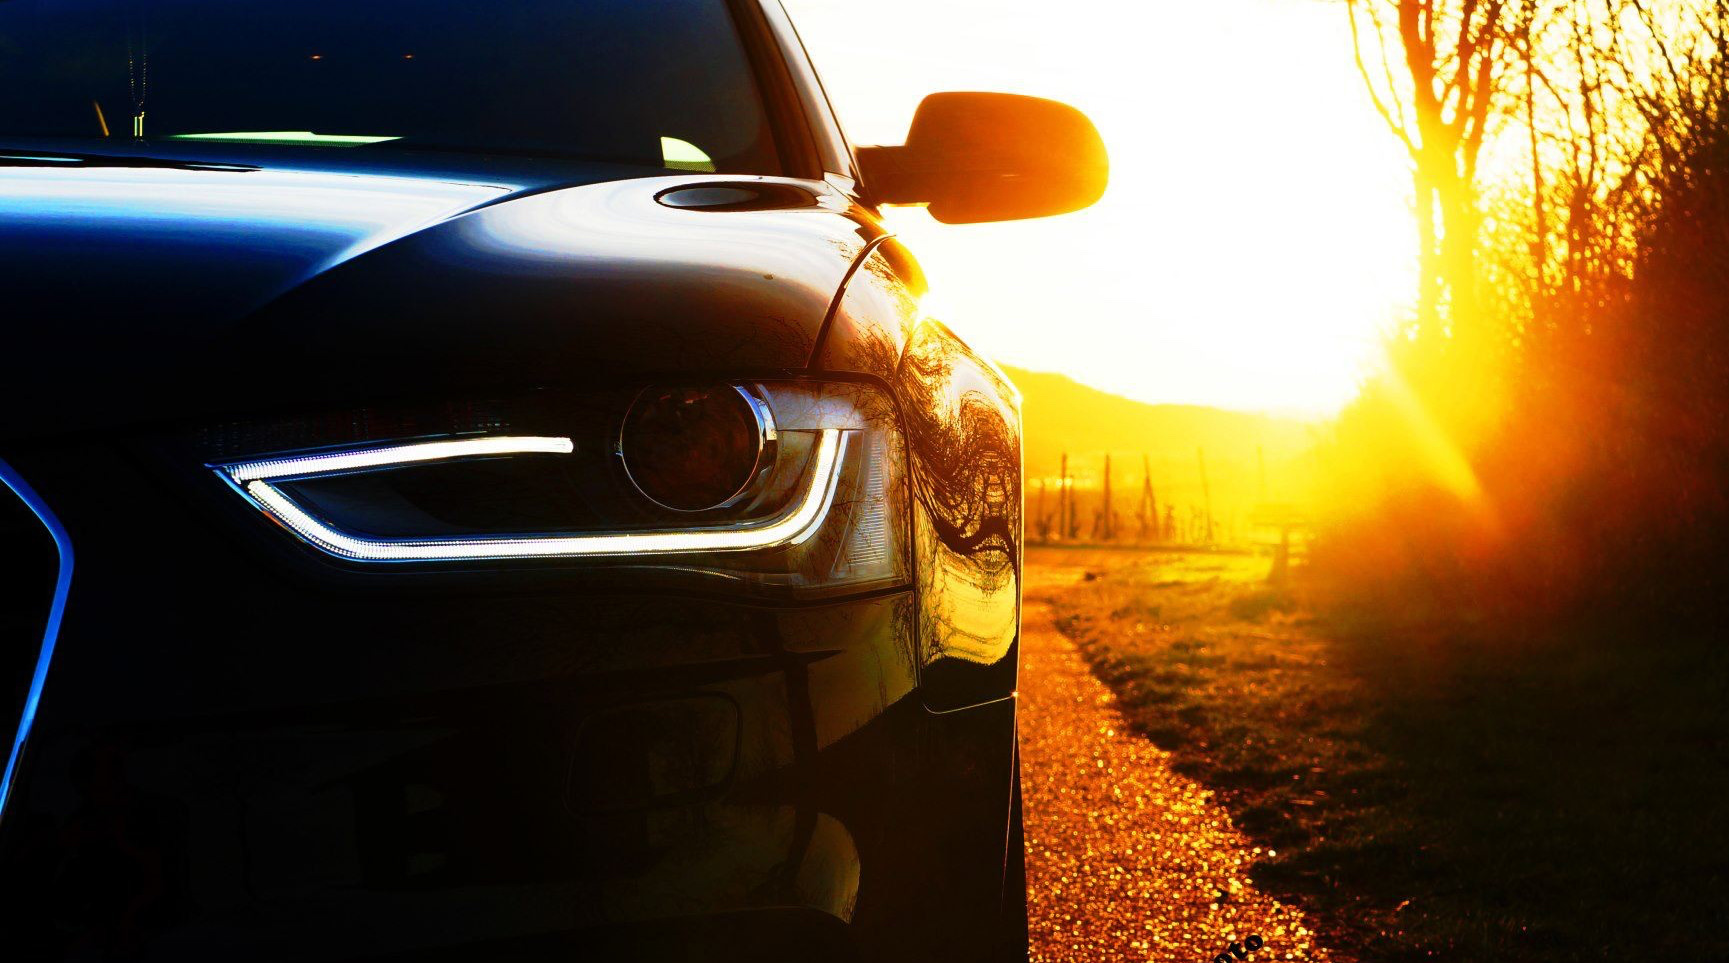 Sun Exposure And Paint Protection